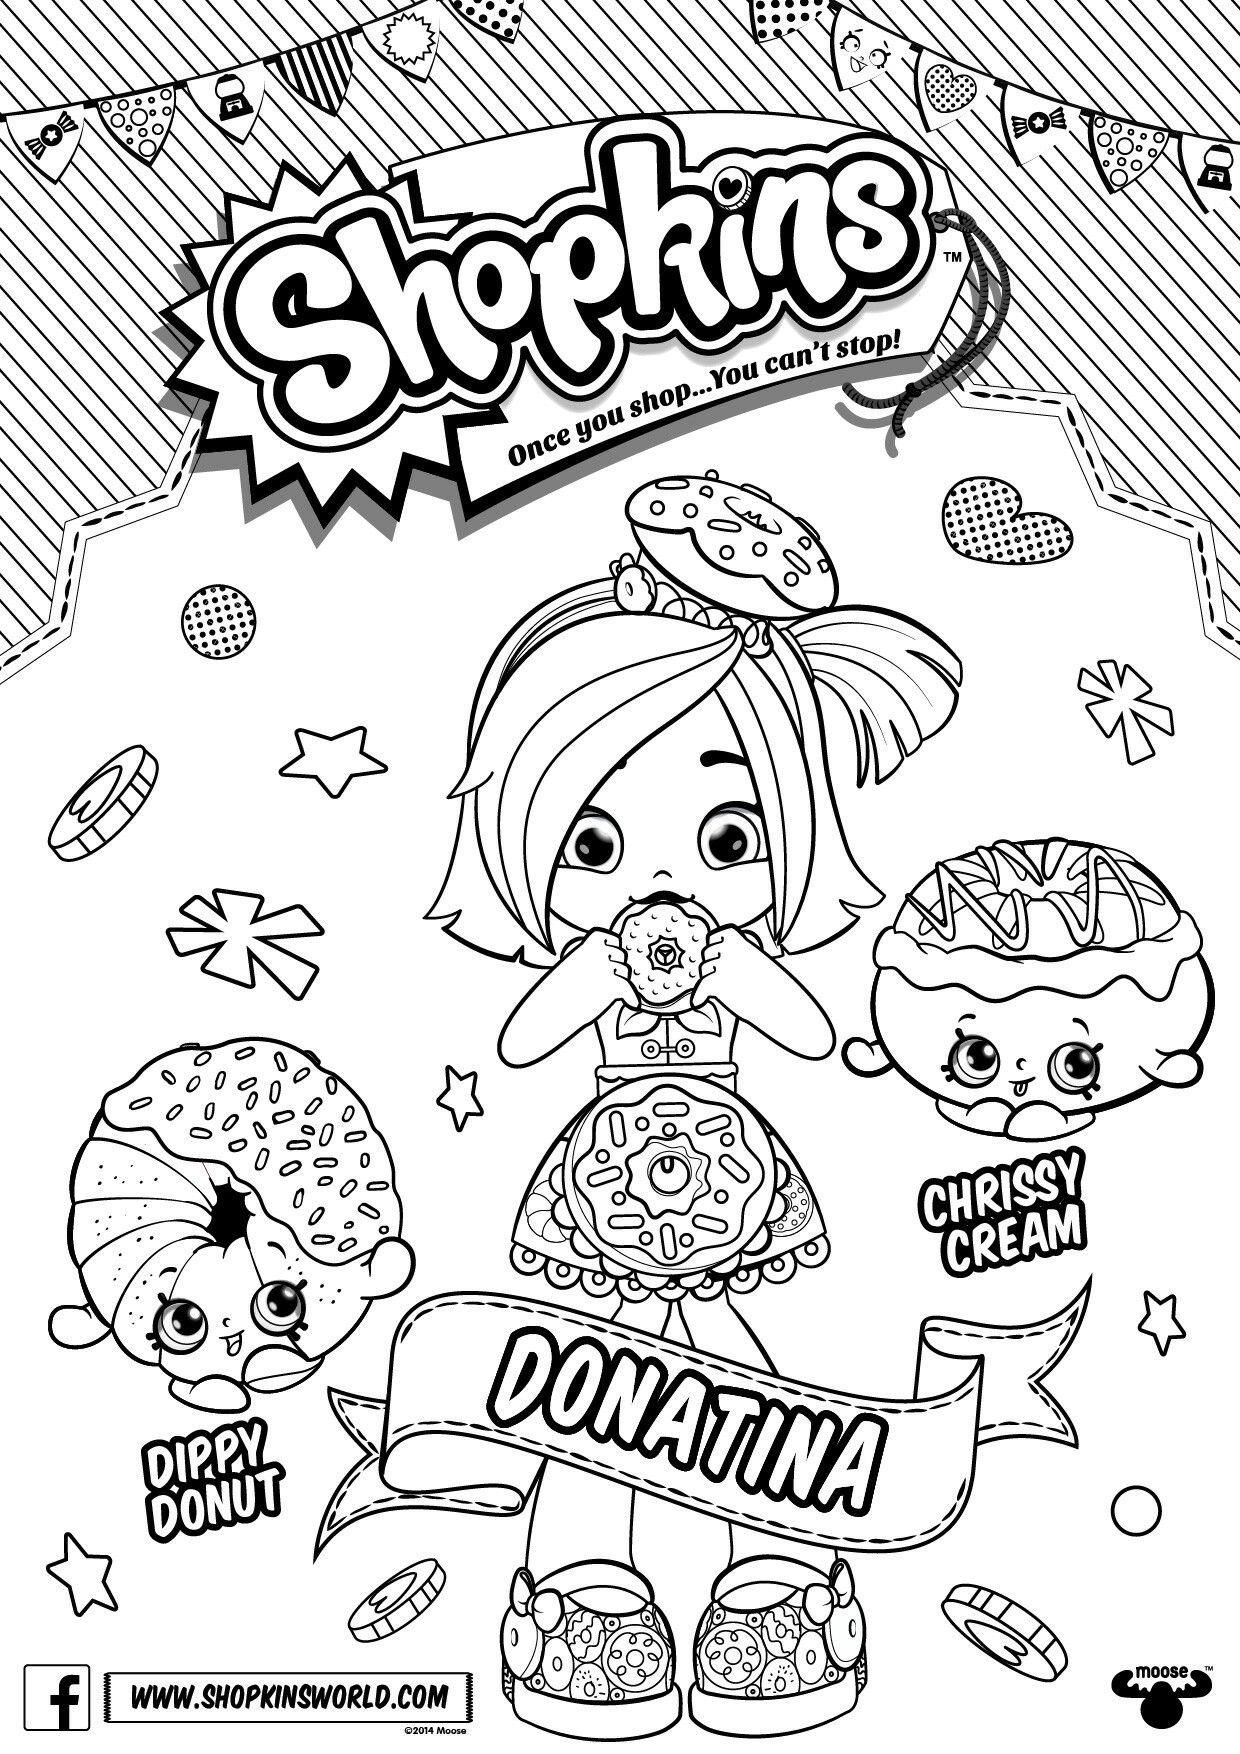 Pin By Tarri Pierse On Shopkins Coloring Sheets Pinterest